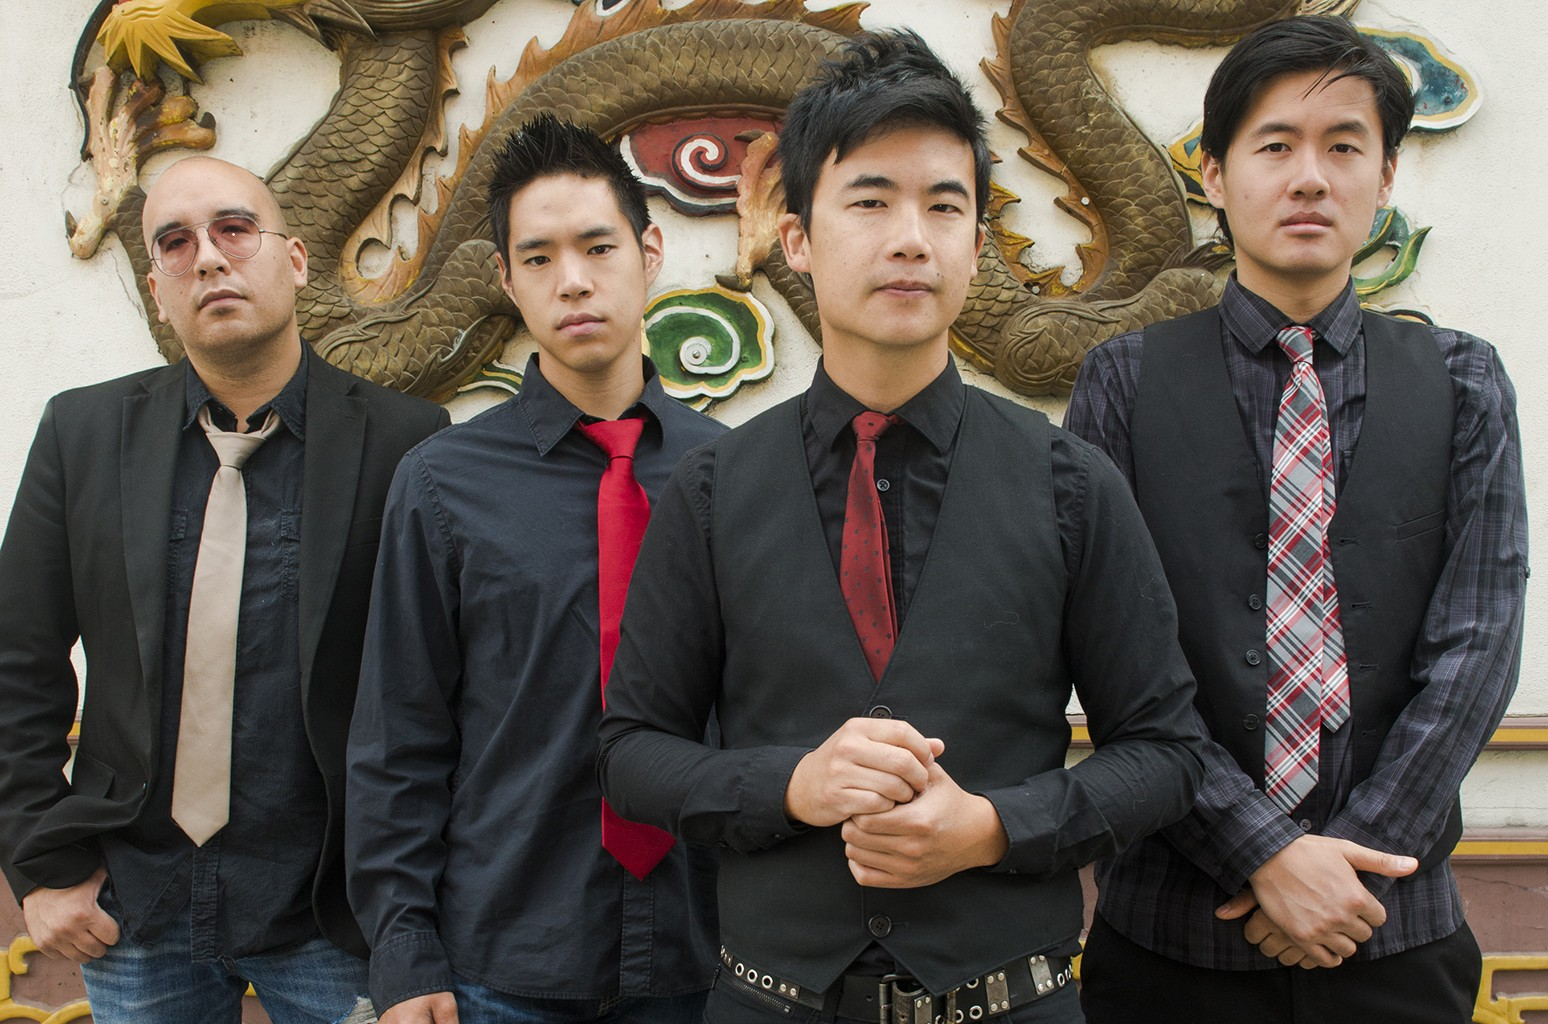 The Slants photographed in 2015